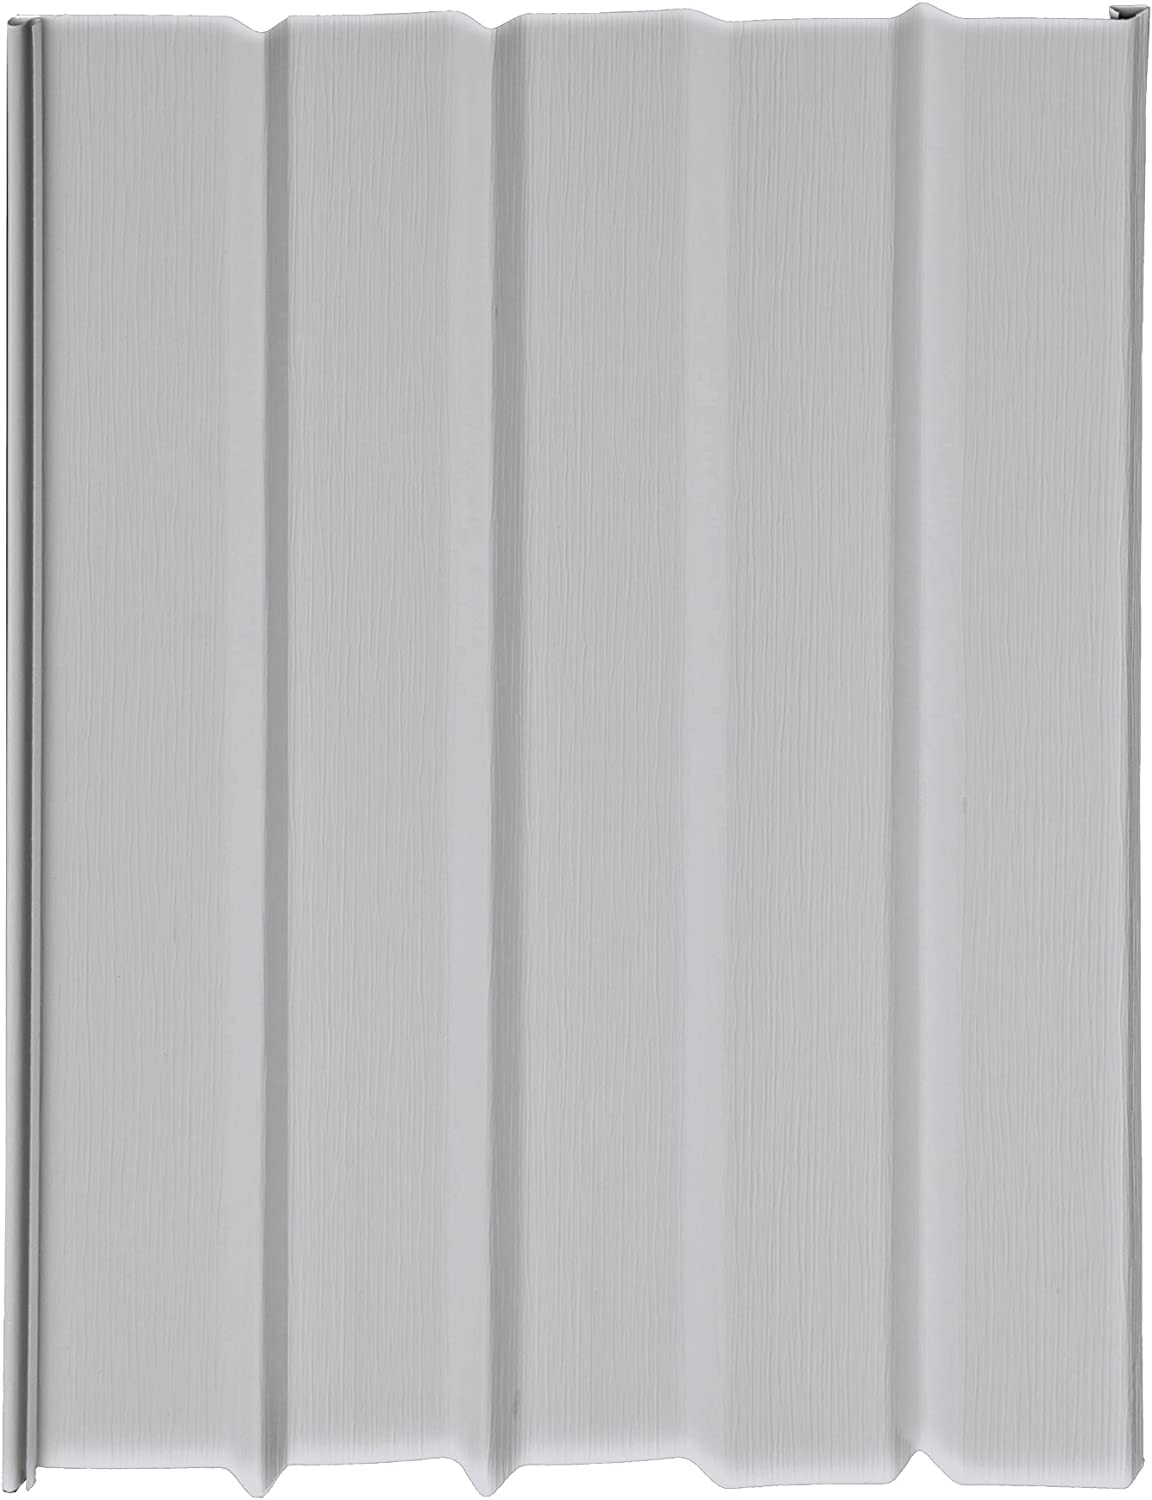 Mobile Home Skirting Vinyl Underpinning Panel GREY 16